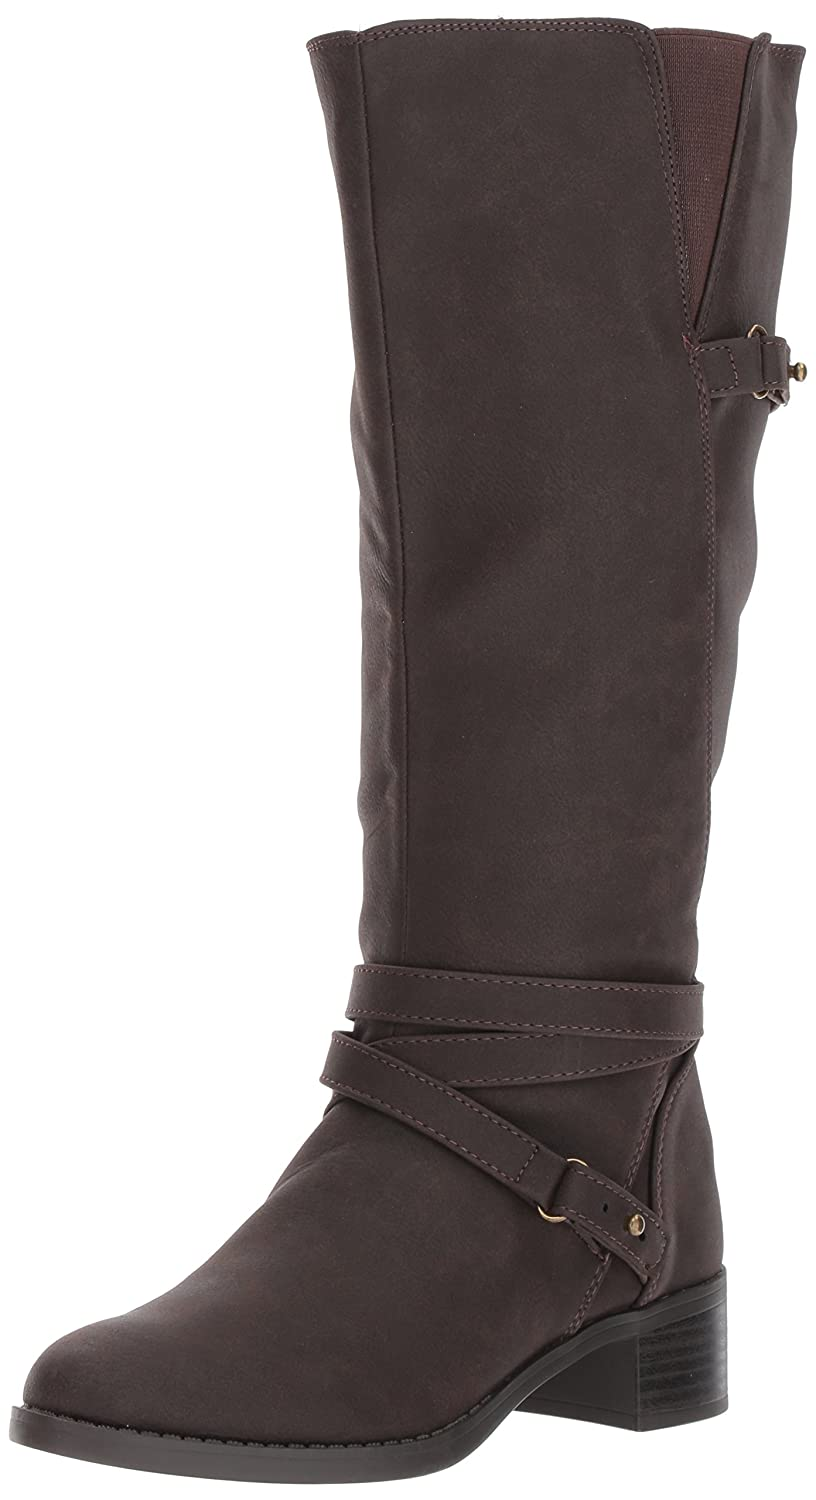 Easy Street Women's Carlita Plus Harness Boot B071ZM7MJN 5 B(M) US|Brown